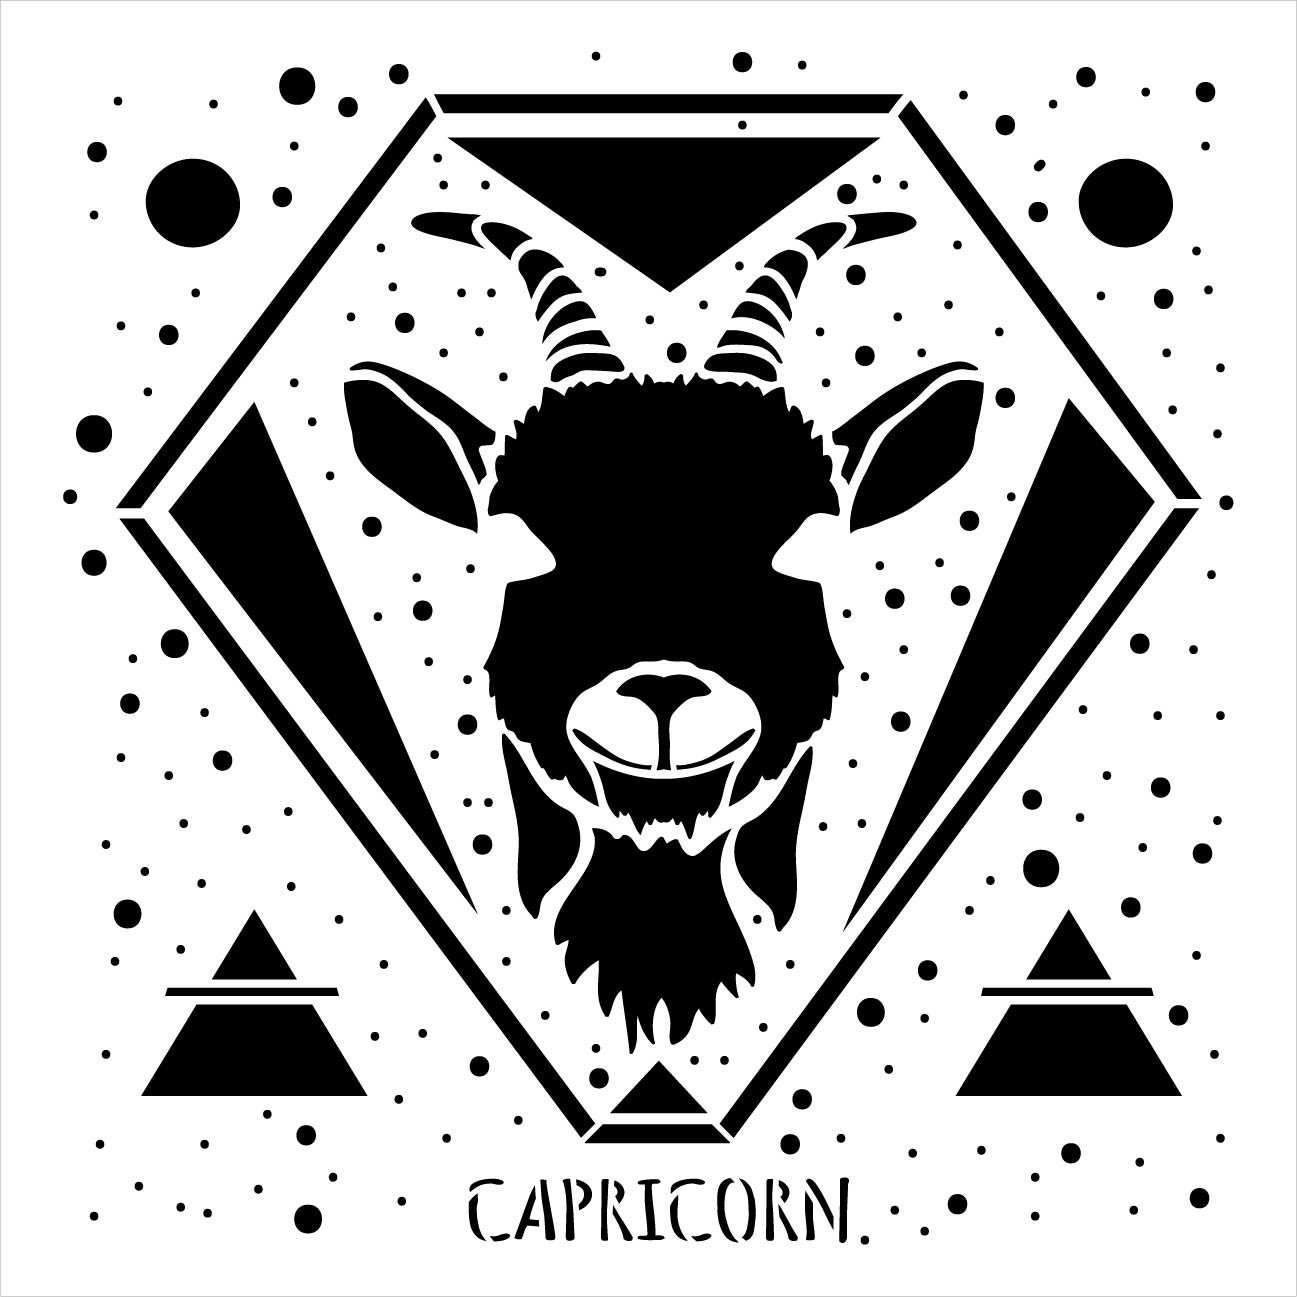 Capricorn Astrological Stencil by StudioR12 | DIY Star Sign Celestial Bedroom & Home Decor | Paint Zodiac Wood Signs | Select Size